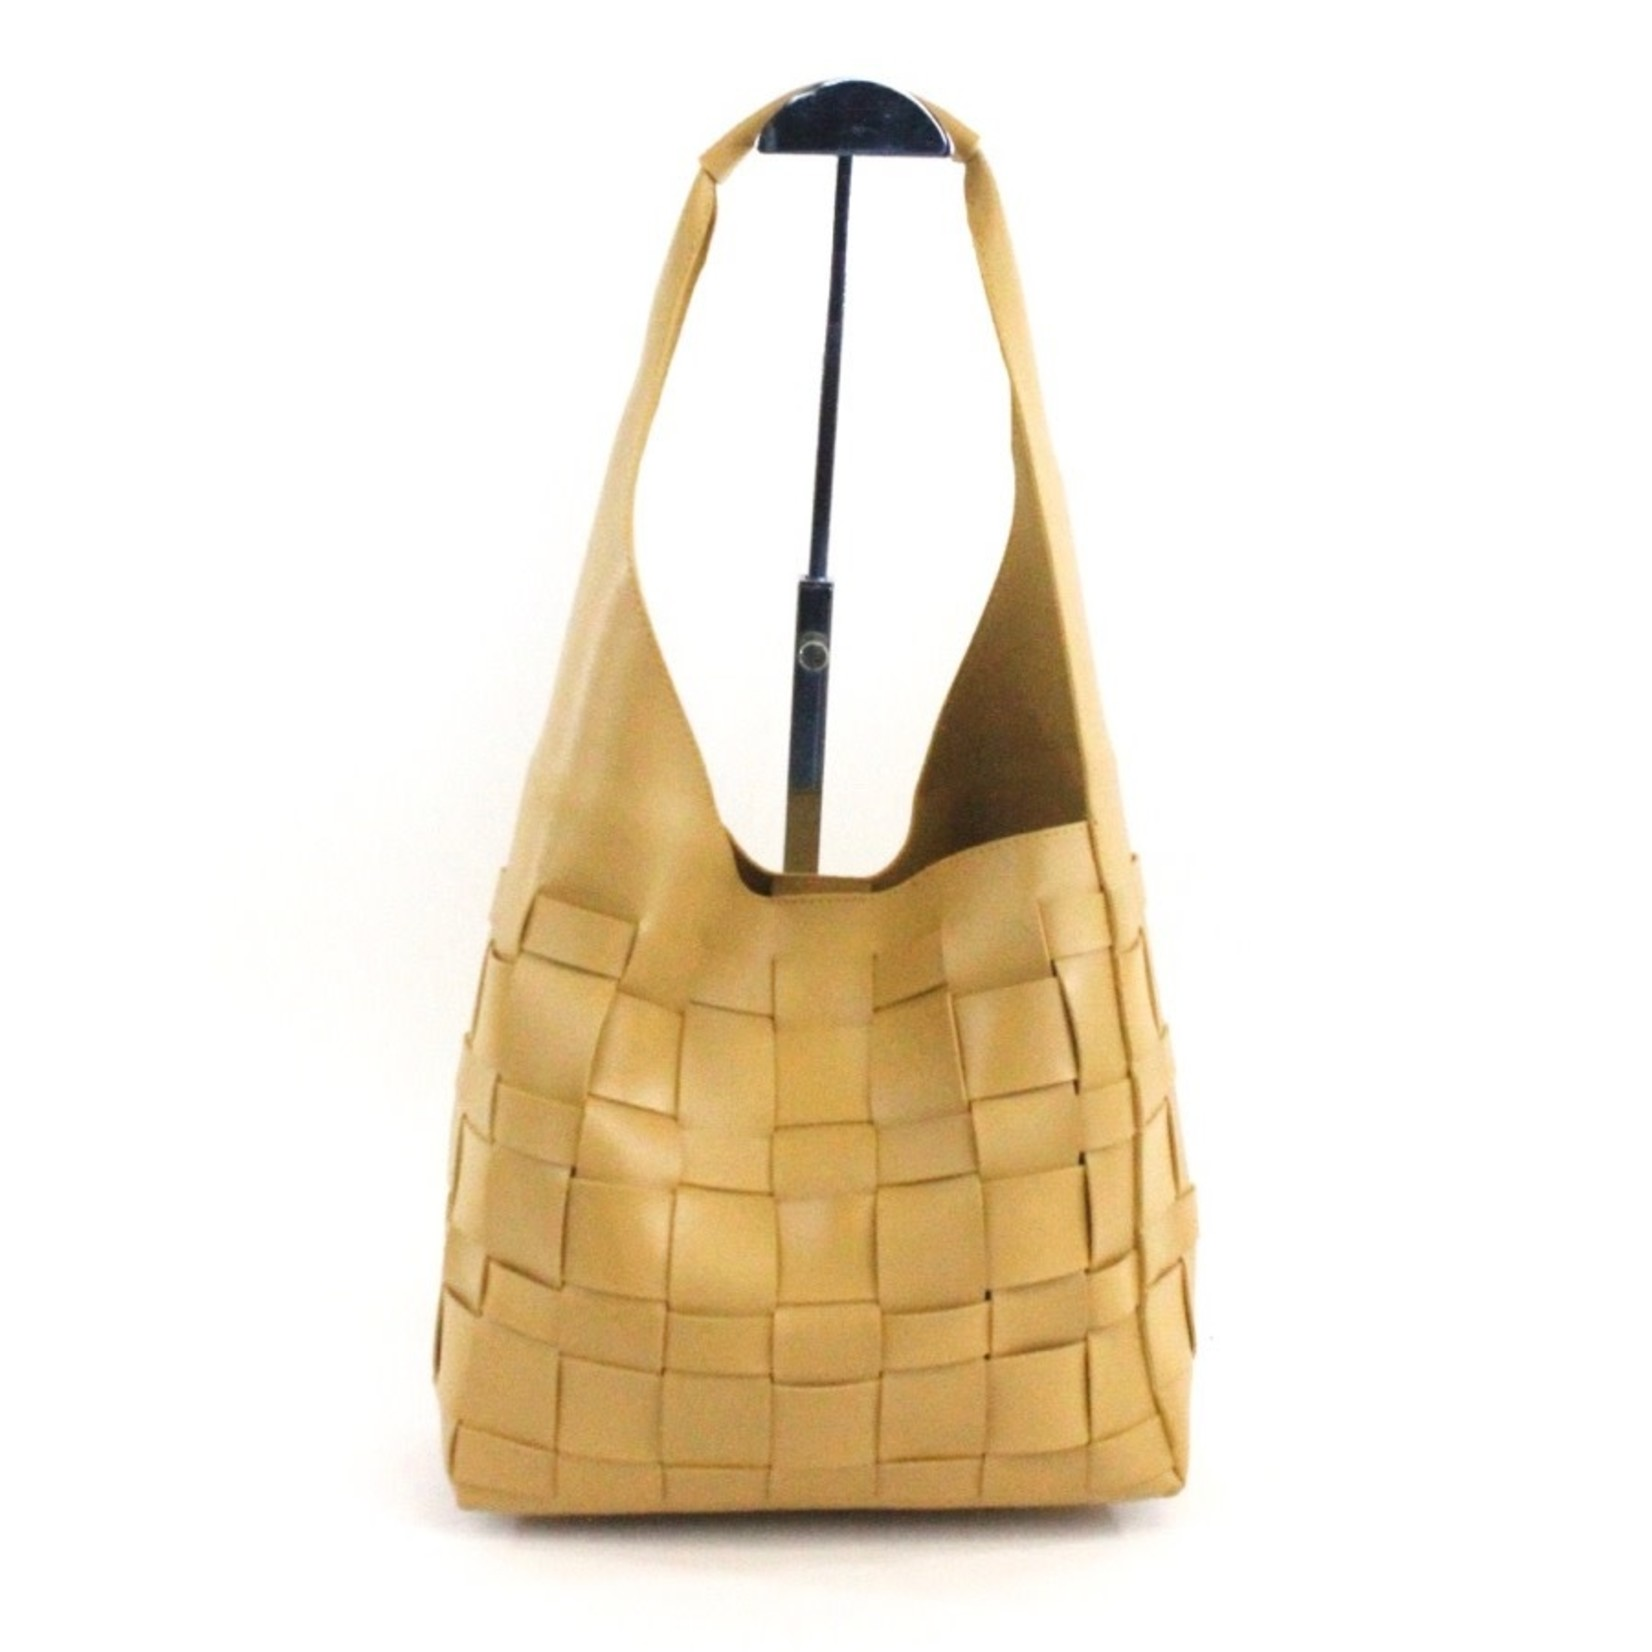 Faux Leather BasketWeave Hobo Bag in Yellow w/ Cosmetic Pouch